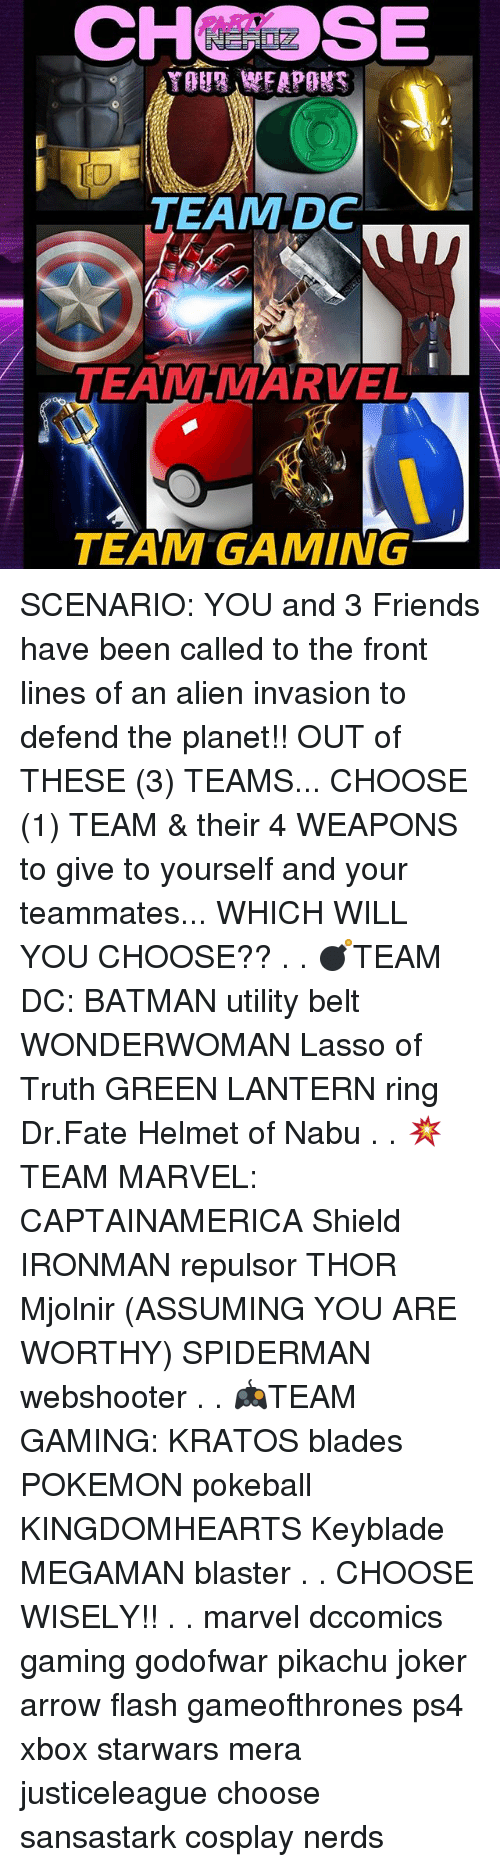 pokeball: CHSE  IO  TEAM DC  TEAM MARVEL  TEAM GAMING SCENARIO: YOU and 3 Friends have been called to the front lines of an alien invasion to defend the planet!! OUT of THESE (3) TEAMS... CHOOSE (1) TEAM & their 4 WEAPONS to give to yourself and your teammates... WHICH WILL YOU CHOOSE?? . . 💣TEAM DC: BATMAN utility belt WONDERWOMAN Lasso of Truth GREEN LANTERN ring Dr.Fate Helmet of Nabu . . 💥TEAM MARVEL: CAPTAINAMERICA Shield IRONMAN repulsor THOR Mjolnir (ASSUMING YOU ARE WORTHY) SPIDERMAN webshooter . . 🎮TEAM GAMING: KRATOS blades POKEMON pokeball KINGDOMHEARTS Keyblade MEGAMAN blaster . . CHOOSE WISELY!! . . marvel dccomics gaming godofwar pikachu joker arrow flash gameofthrones ps4 xbox starwars mera justiceleague choose sansastark cosplay nerds